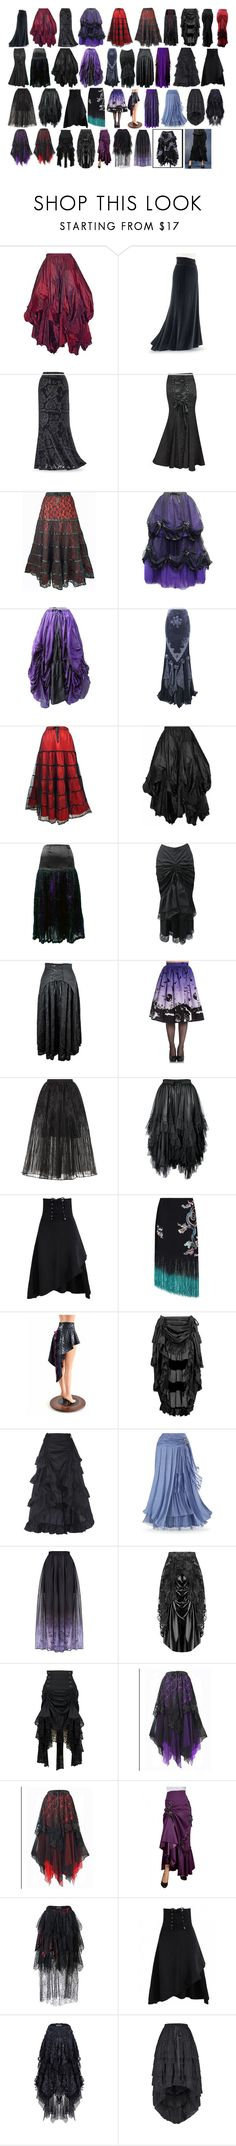 """""""Lanya's Long Skirts #2"""" by switchback13 on Polyvore featuring Hell Bunny, Elie Saab, RIXO London and California Costumes"""